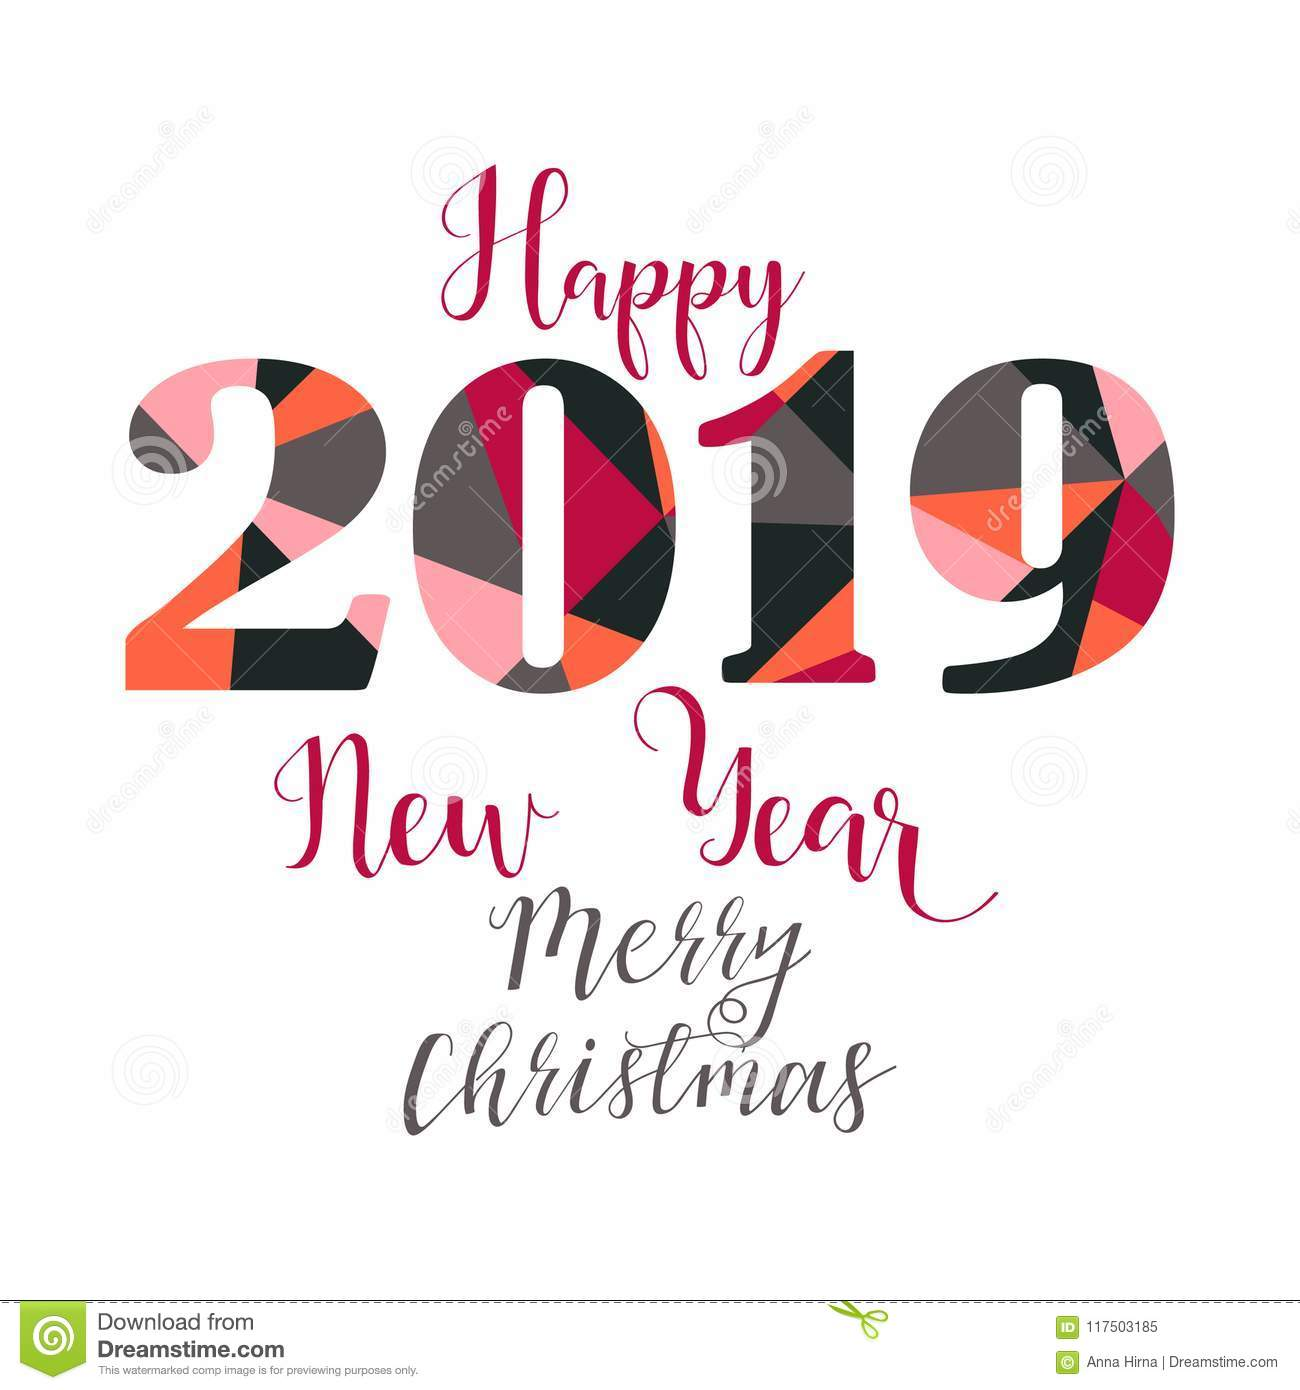 Merry christmas and happy new year 2019 gifts